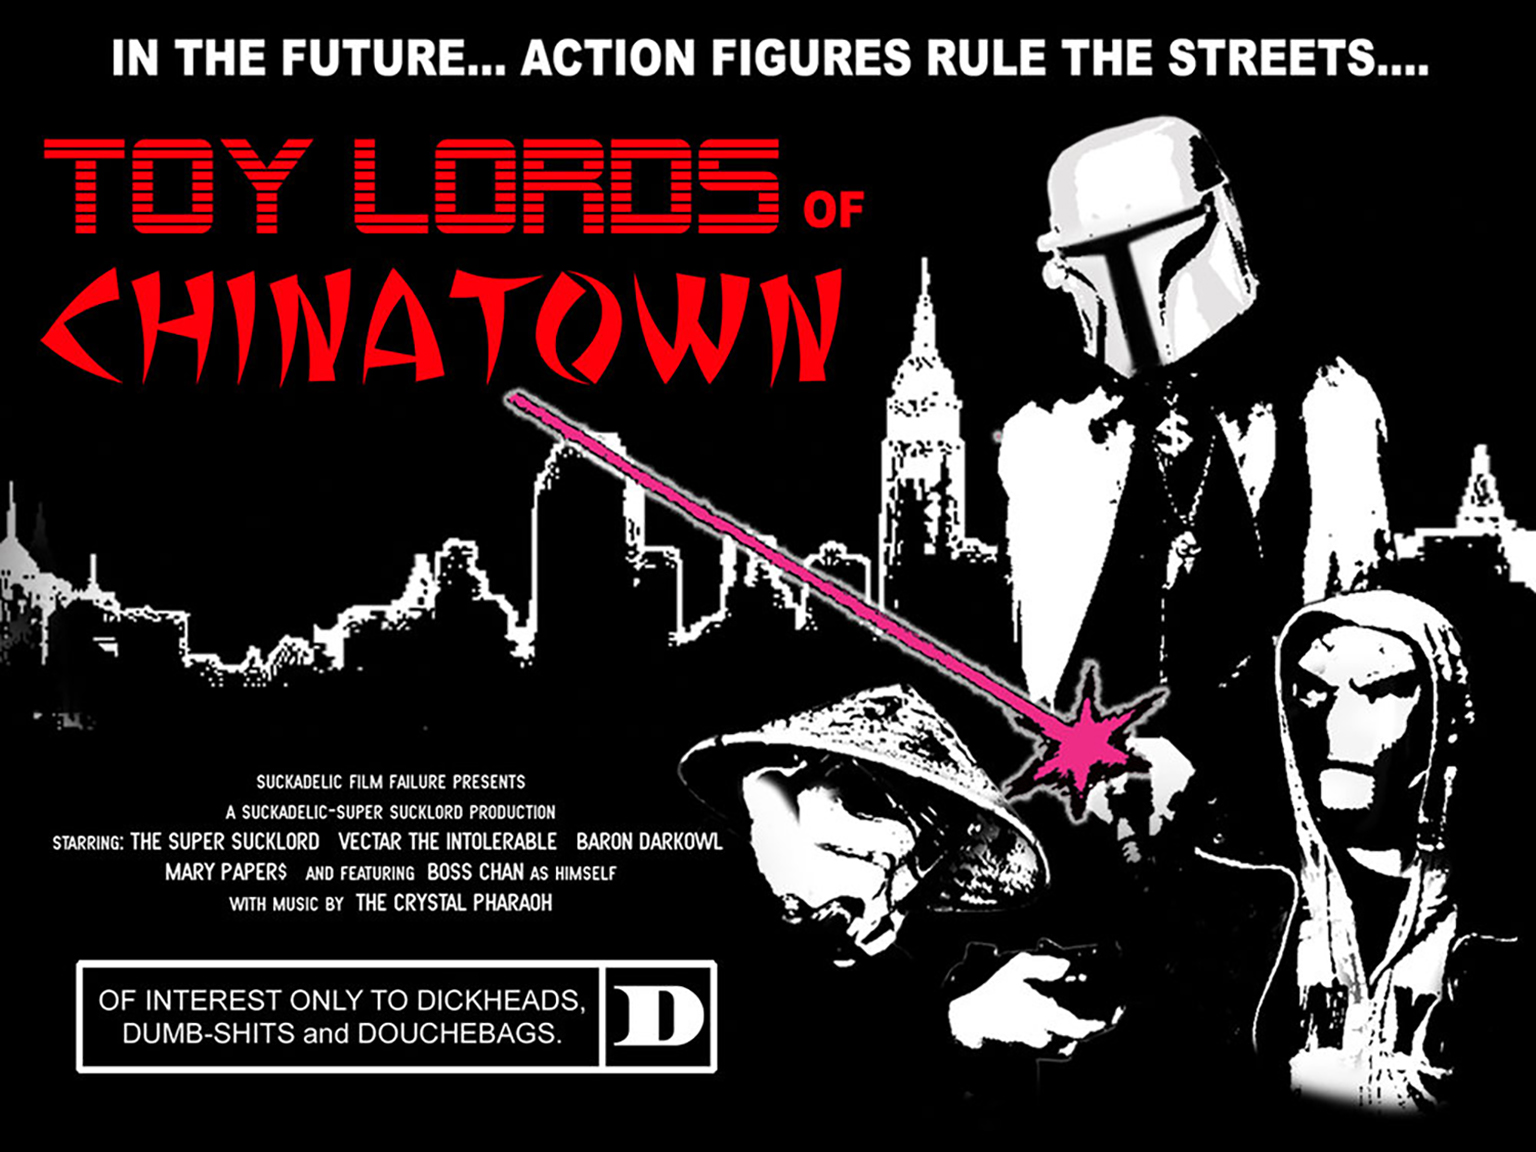 Toy Lords of Chinatown